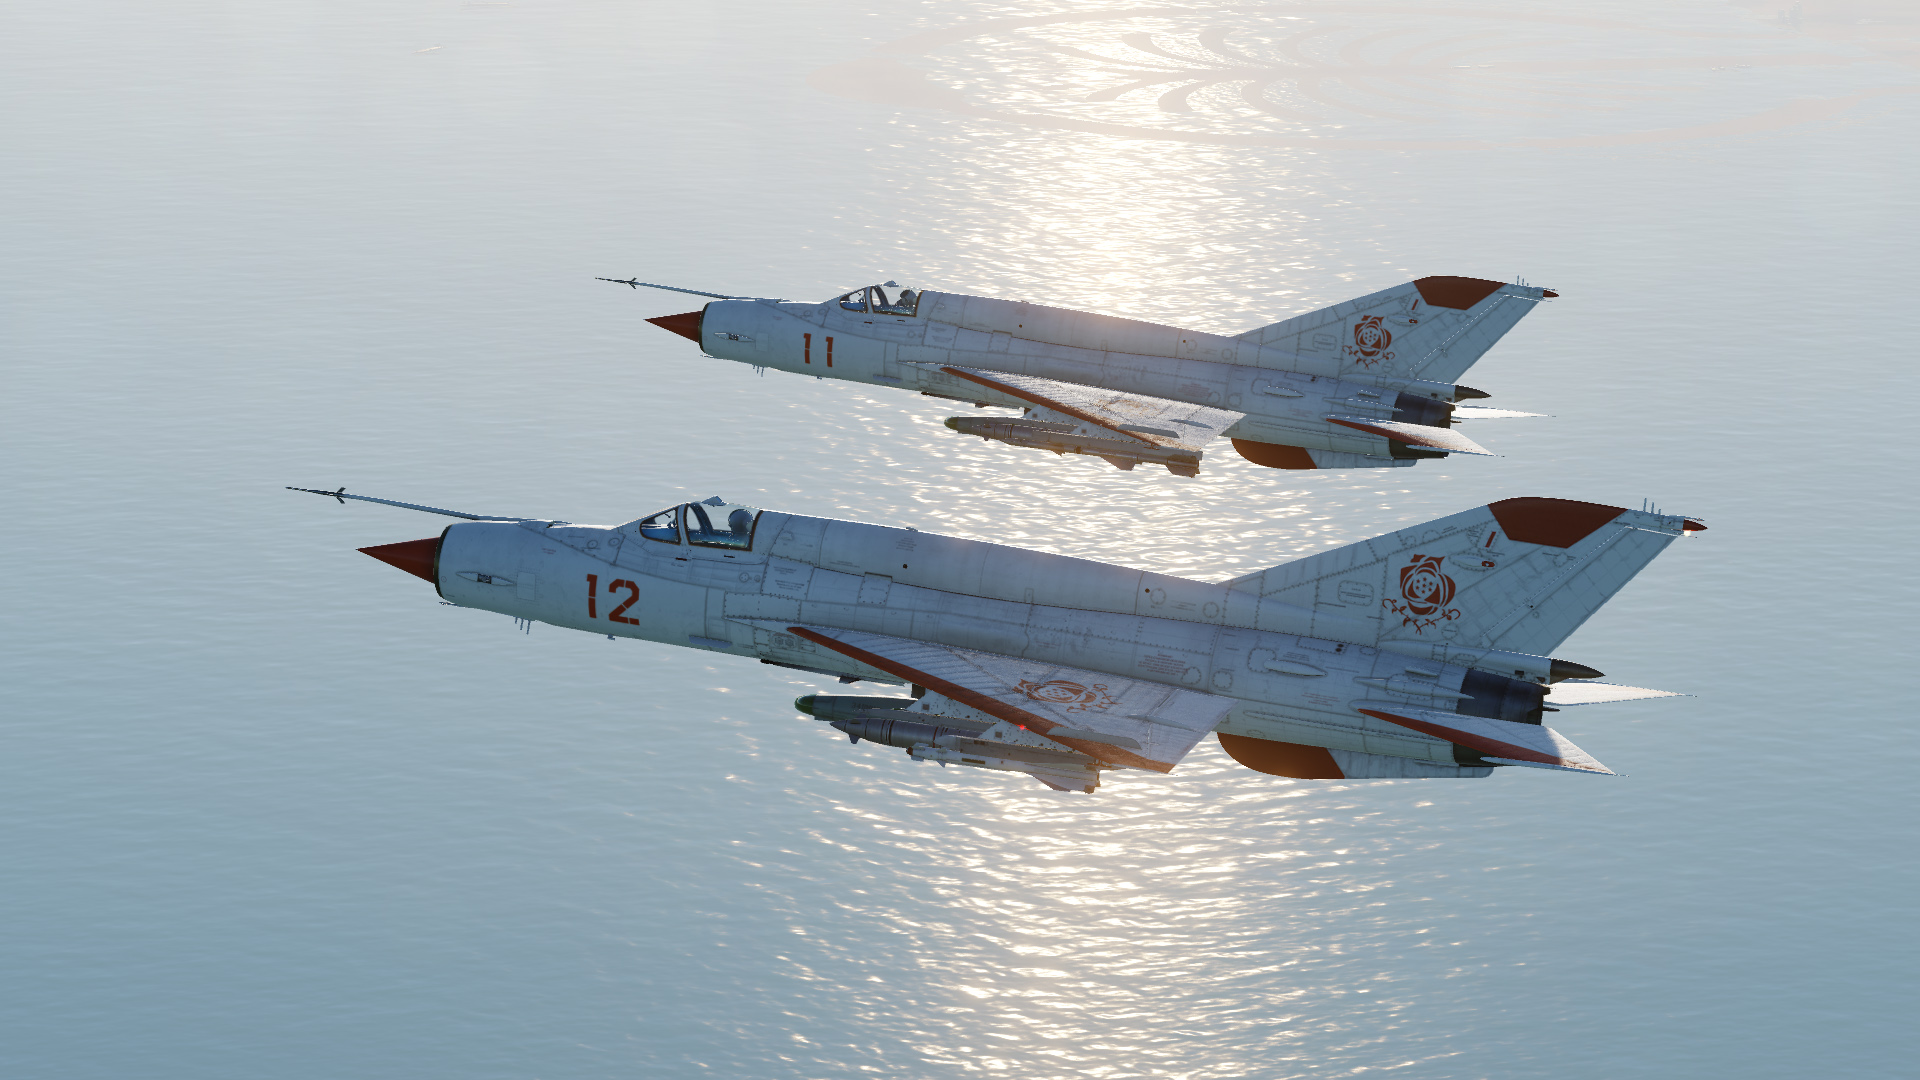 Kingdom of Erusea, Rose Squadron MiG-21Bis